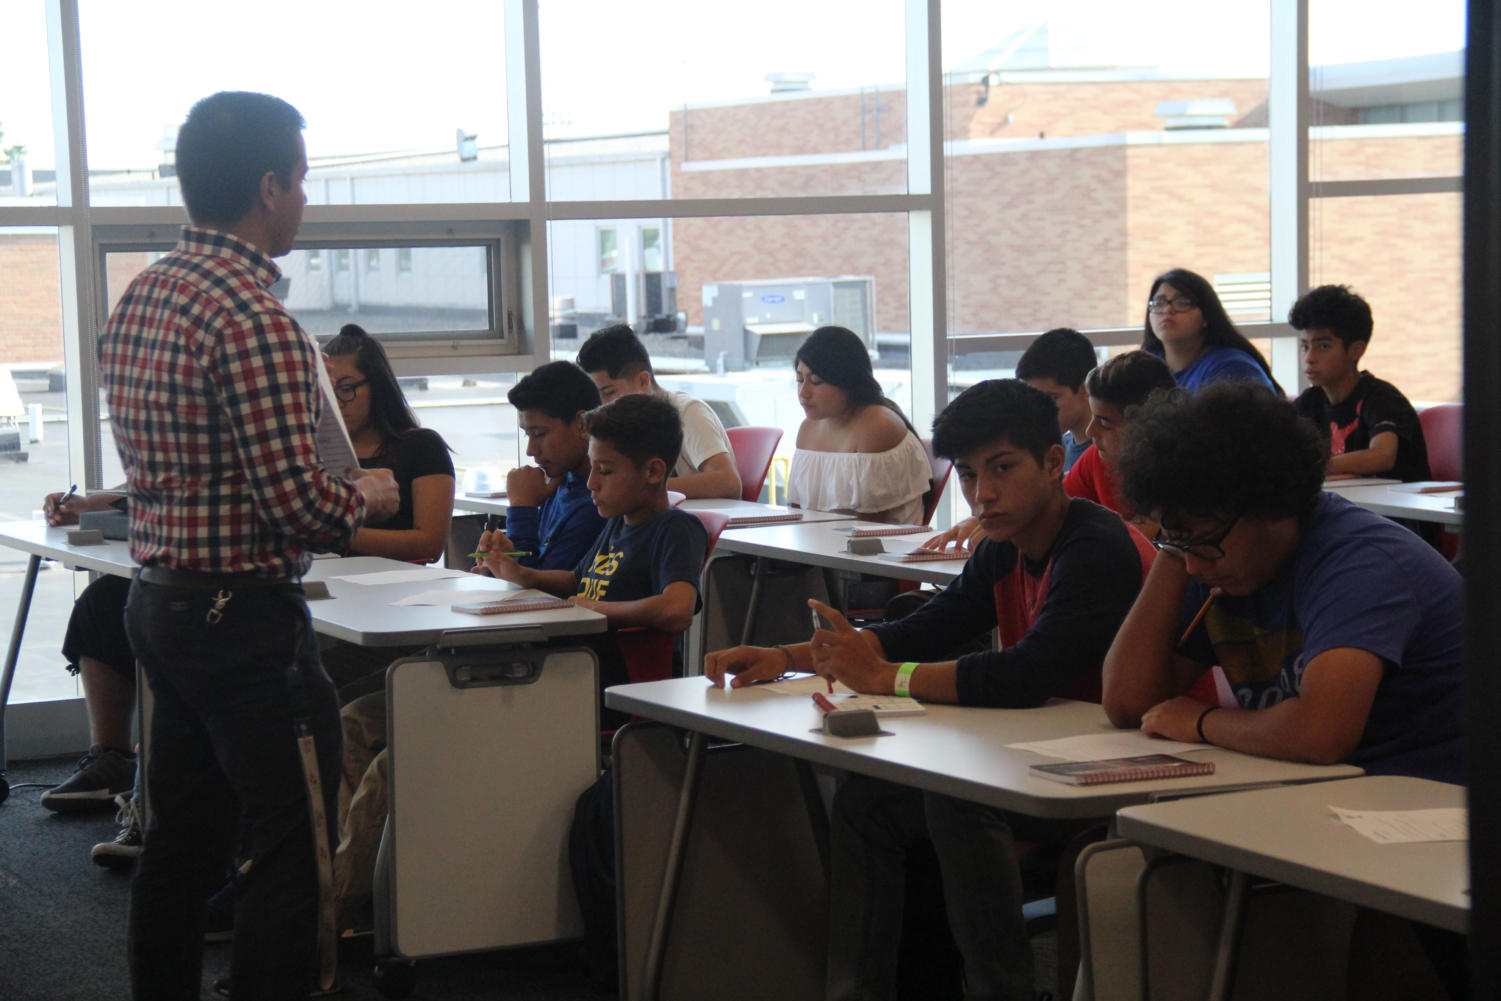 Spanish teacher Brian Packowitz lectures Spanish class as students look on and take notes